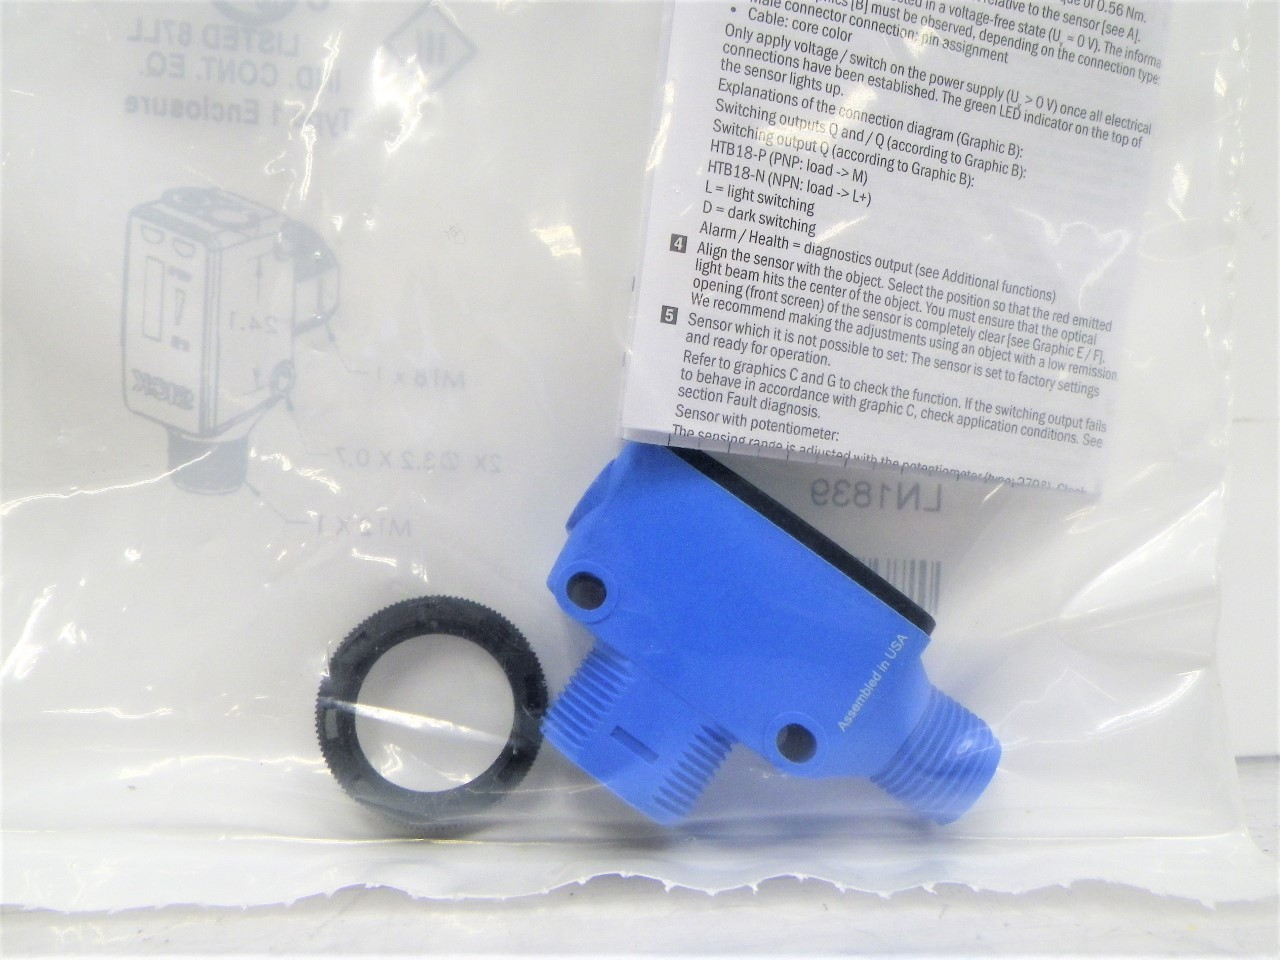 HTB18-P4A2BB 1073431 HTB18P4A2BB Sick Rectangular Photoelectric Sensors Background Suppression (New In Bag) (2)